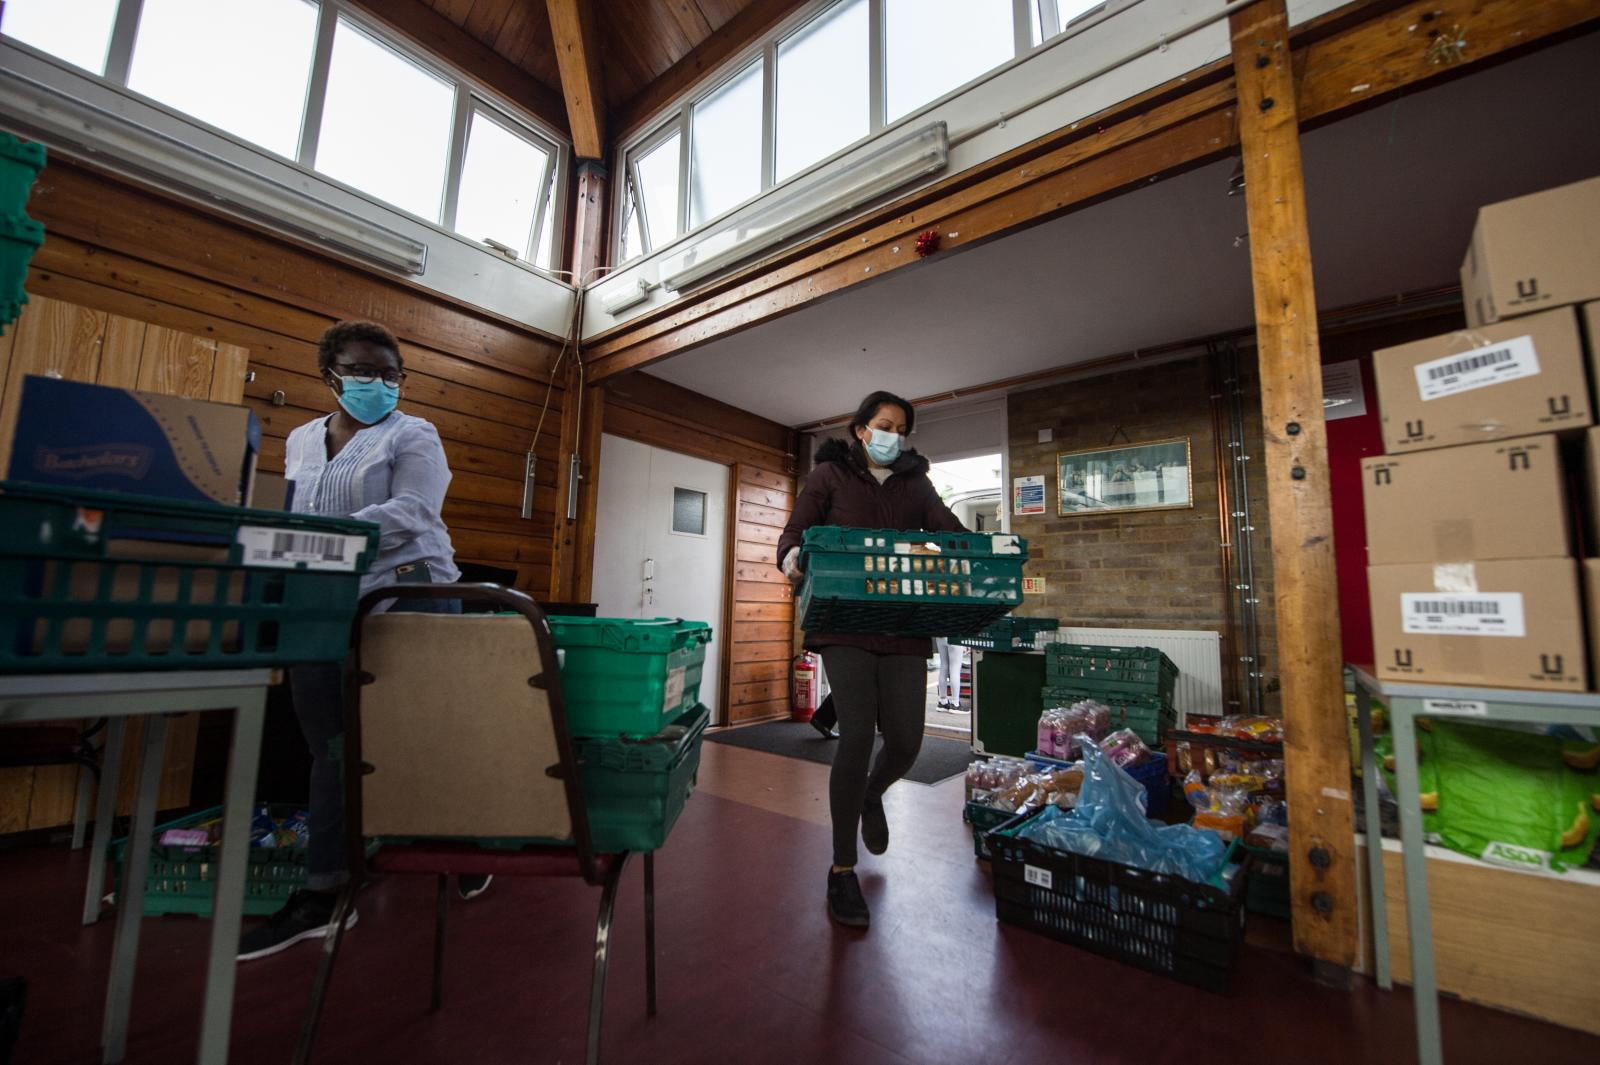 Caritas Westminster warns of increased demand on food banks if Government cuts Universal Credit - Diocese of Westminster